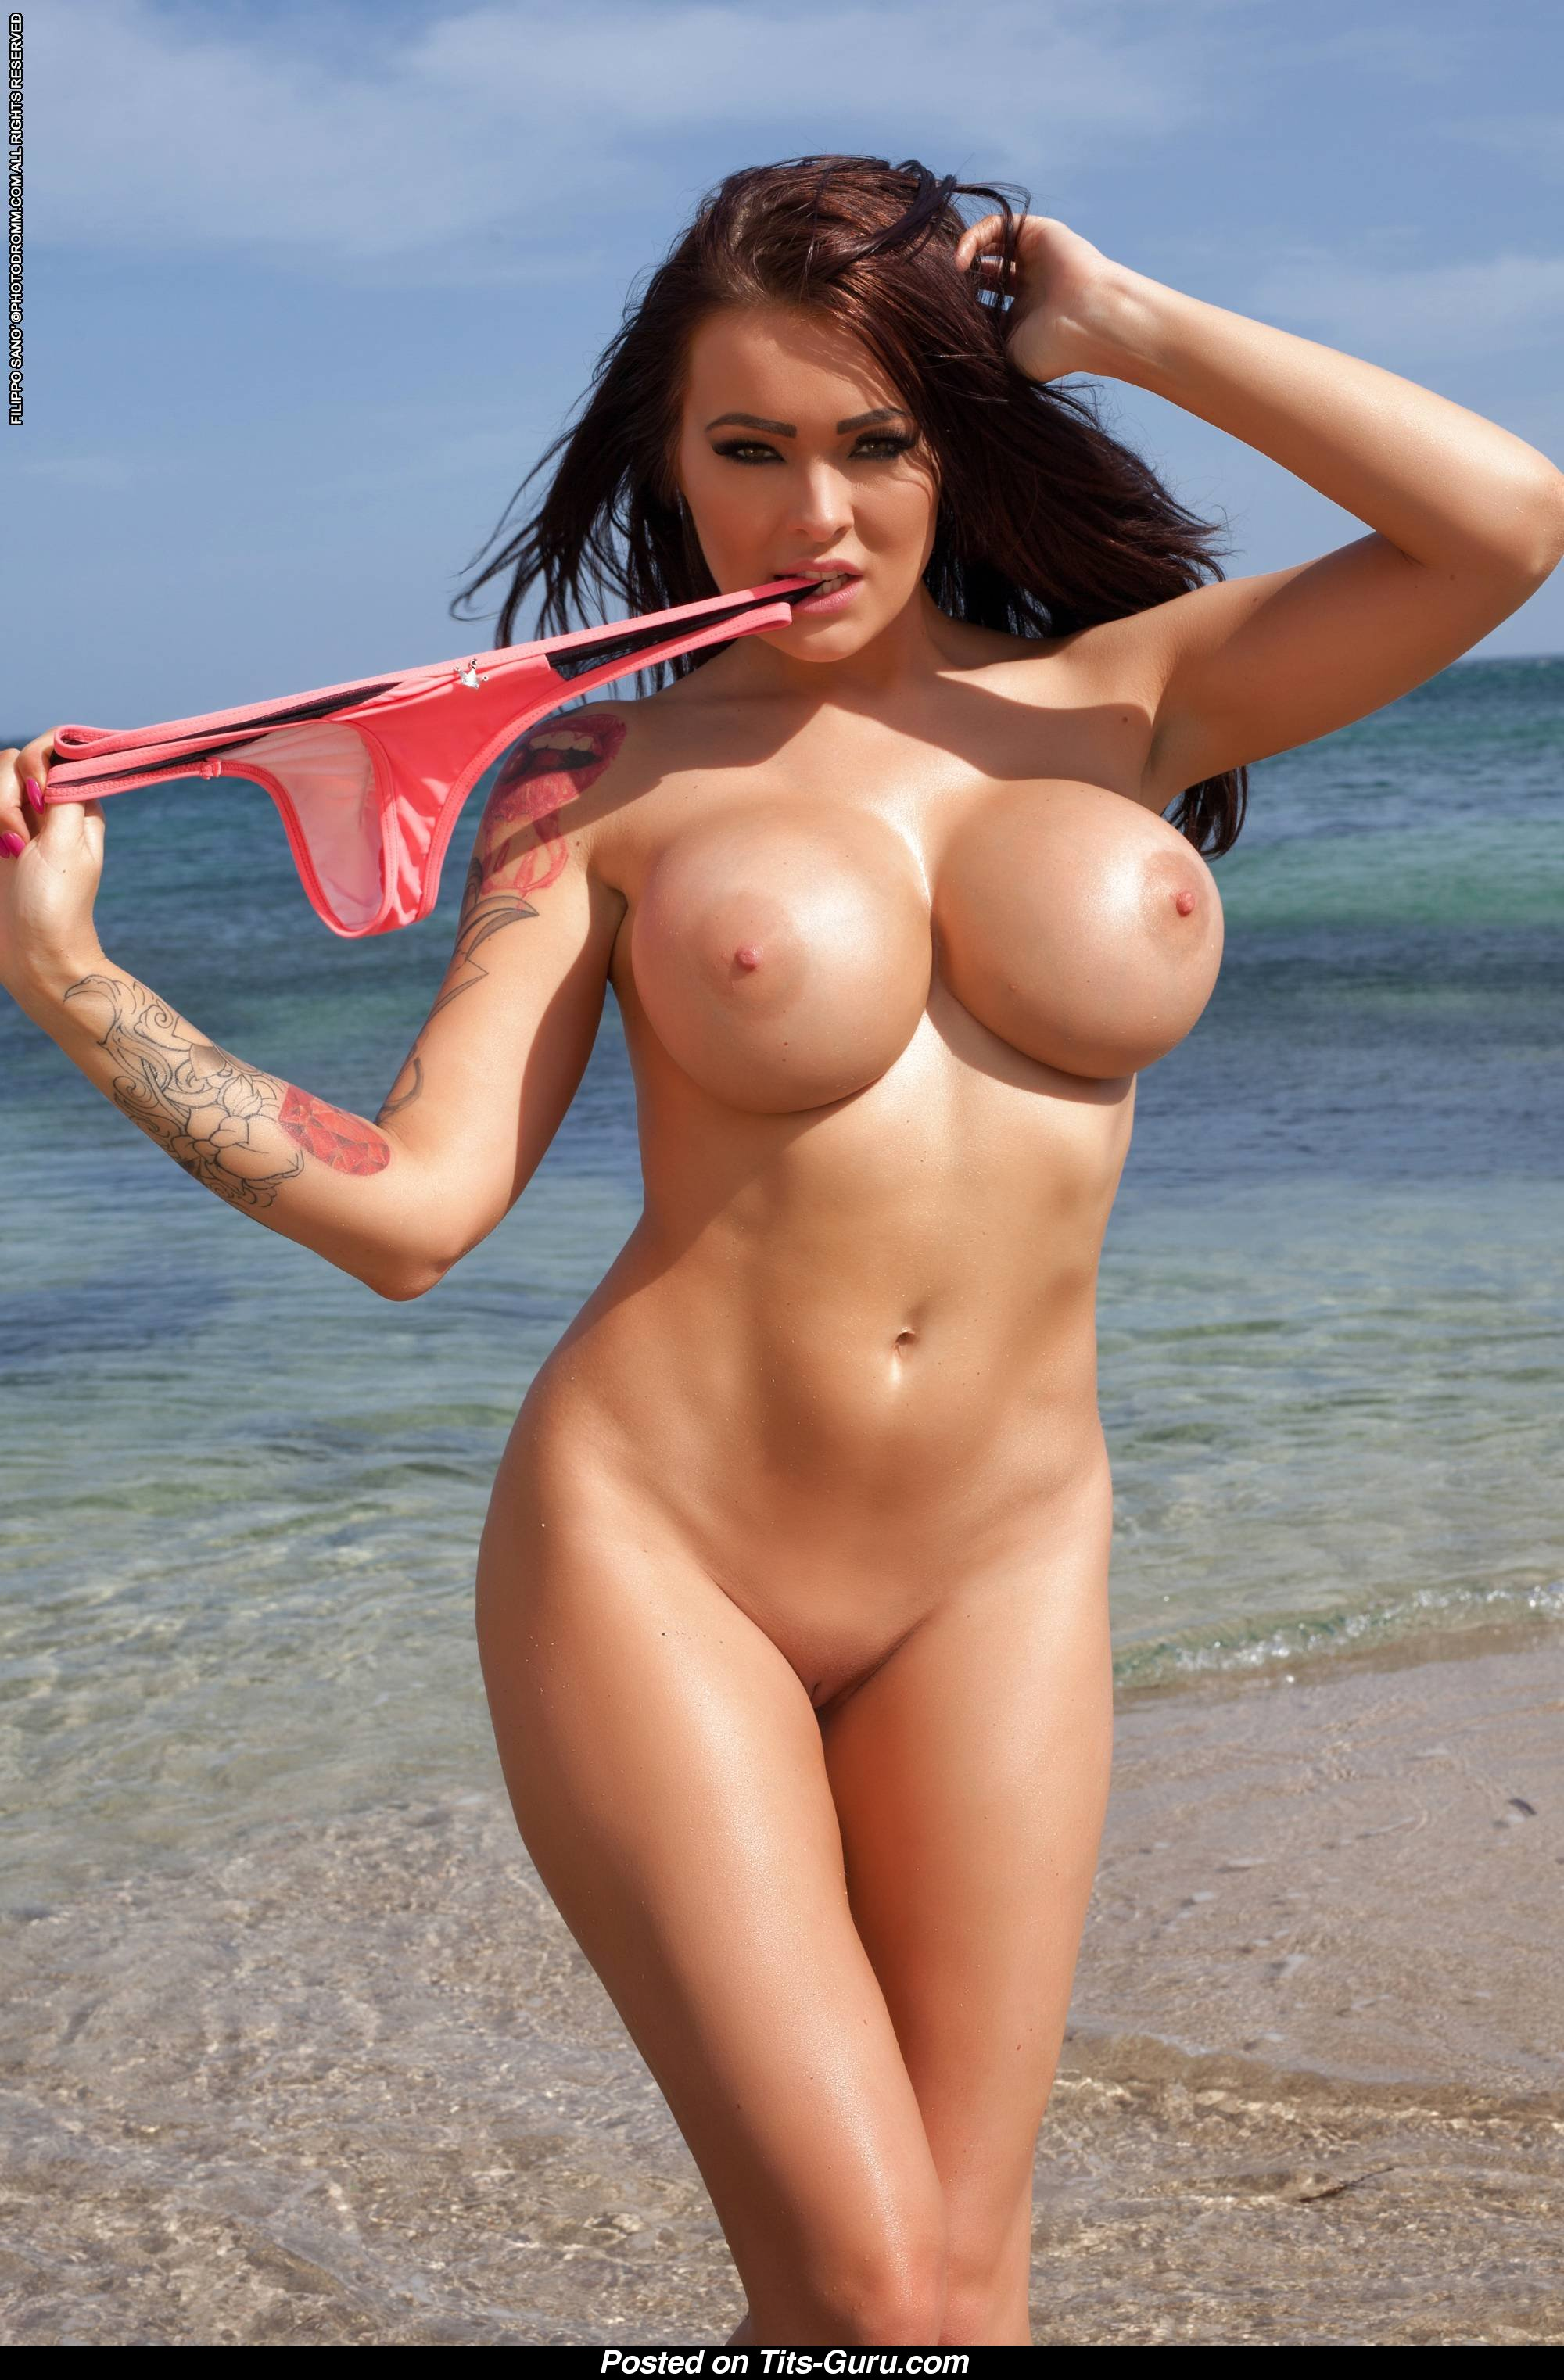 Women large tits great nipples naked